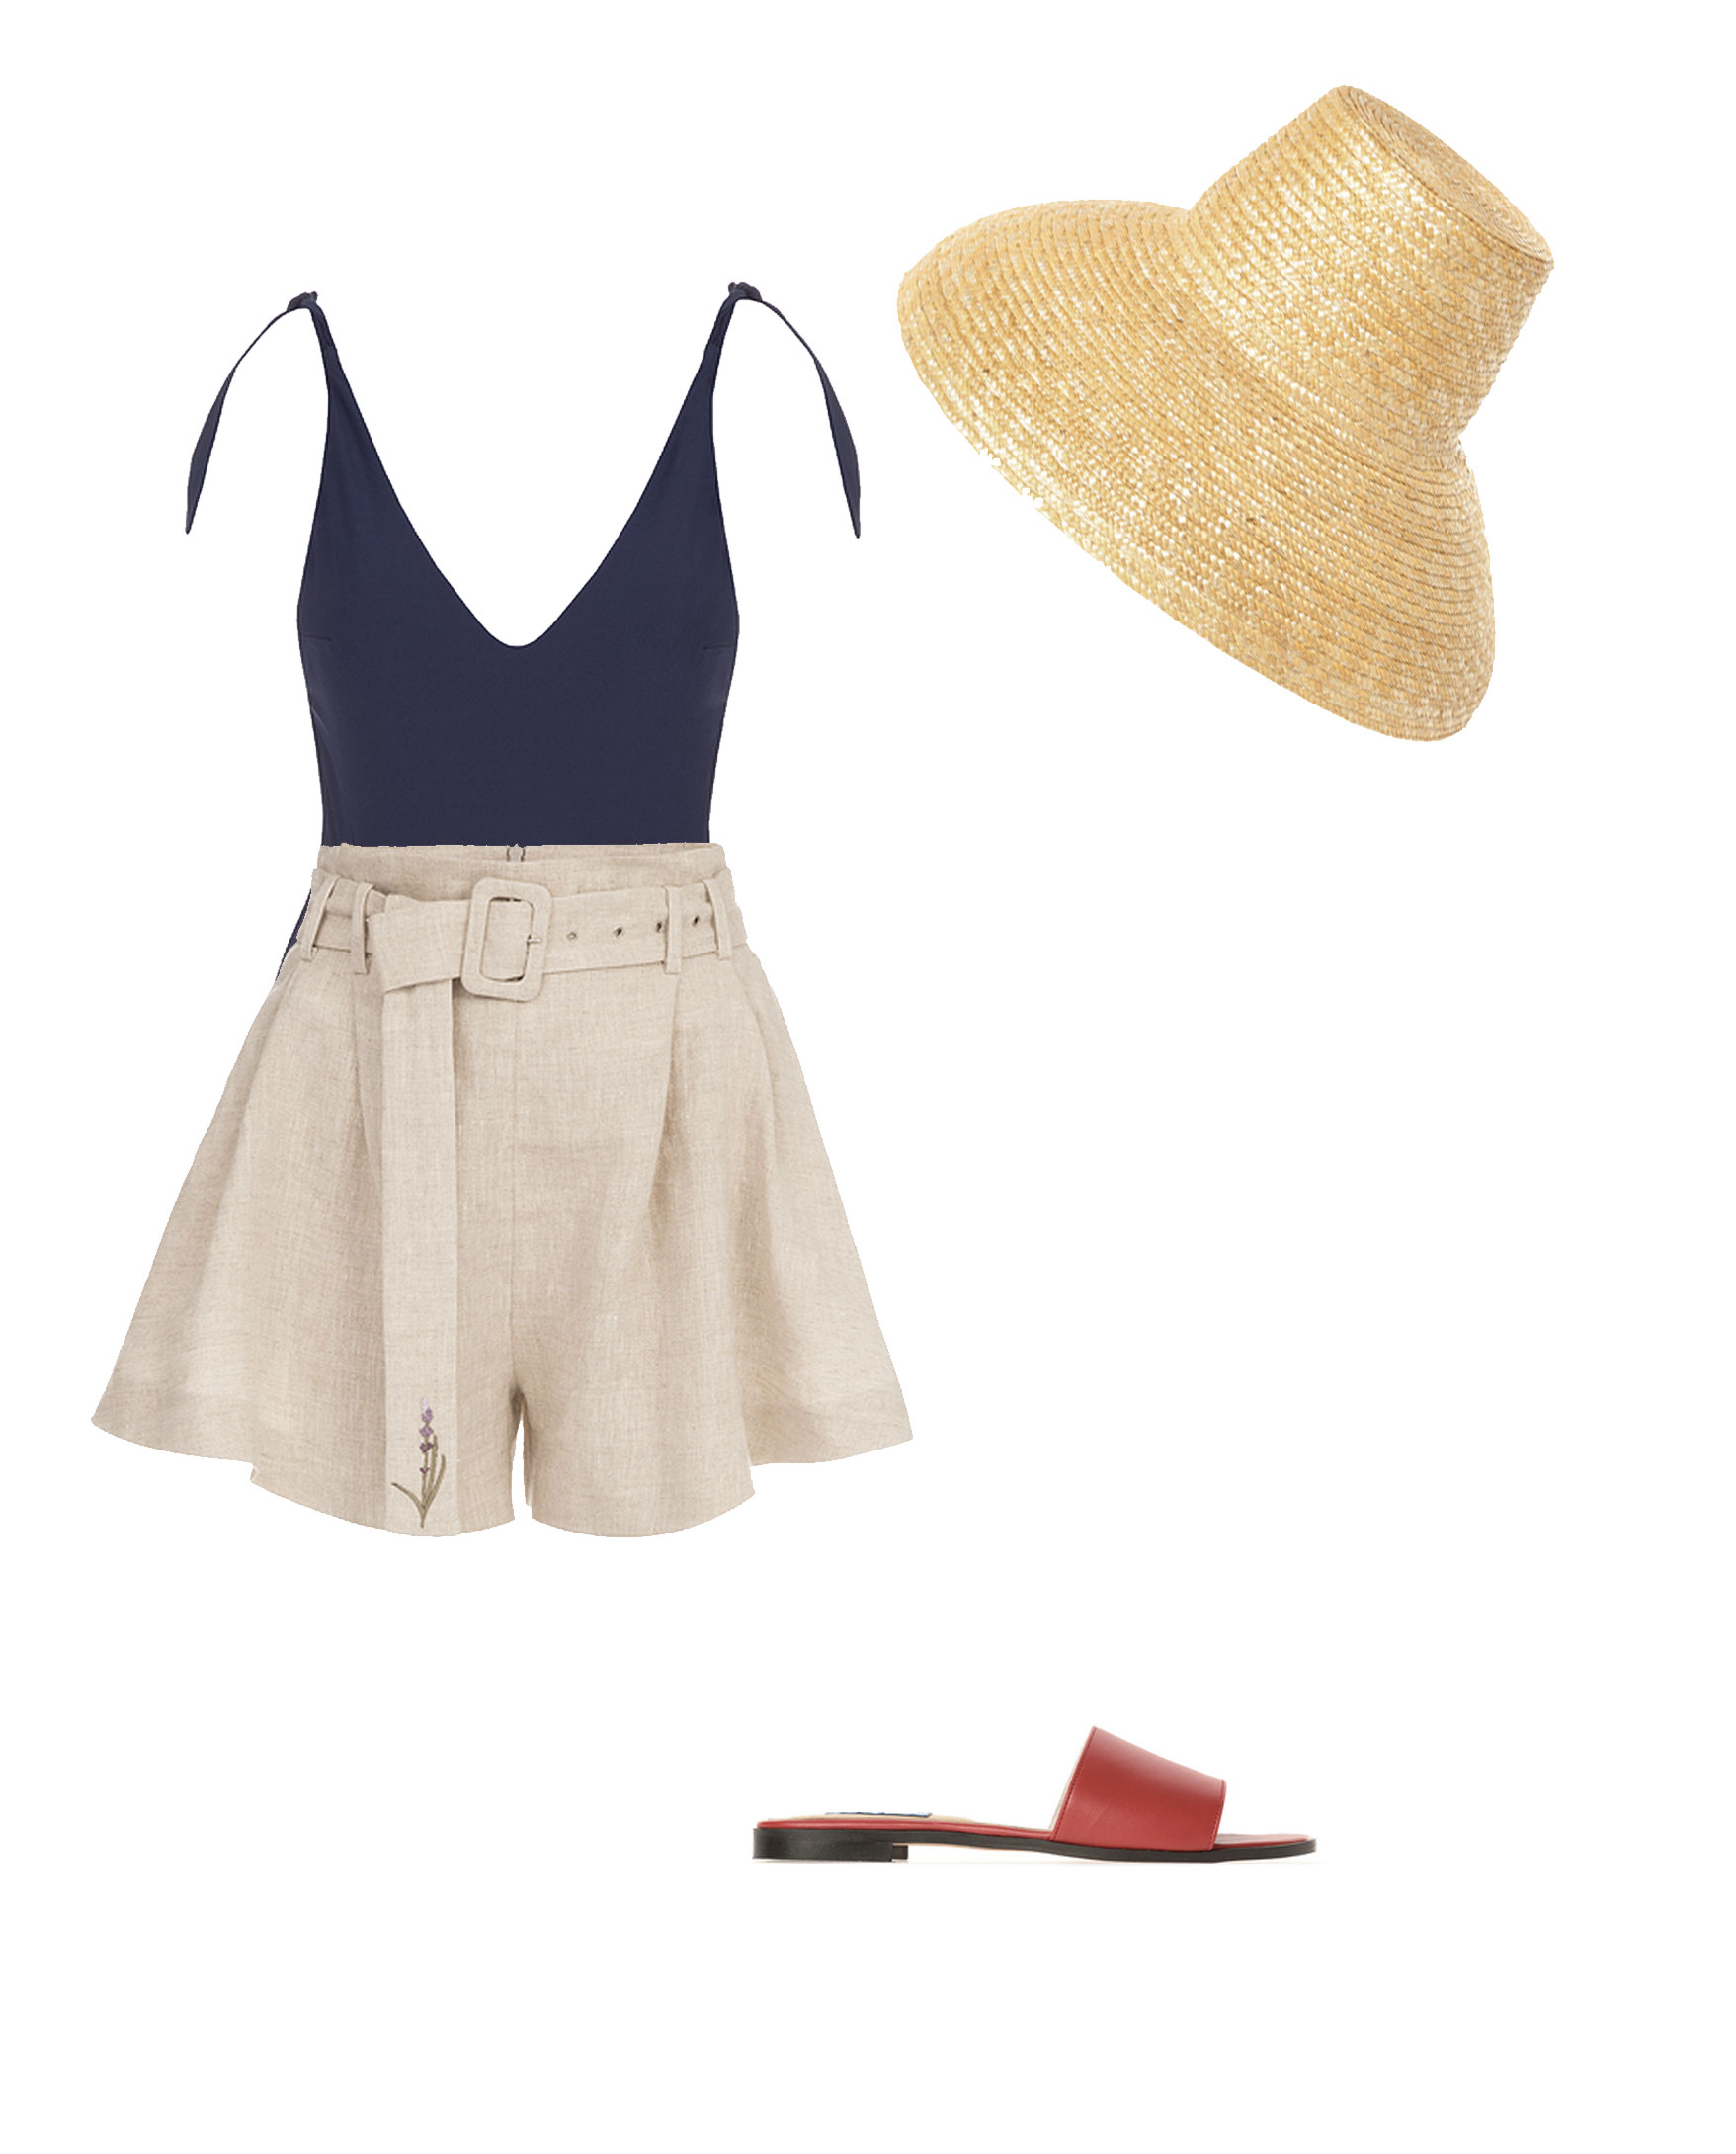 Everyday outfits with shorts